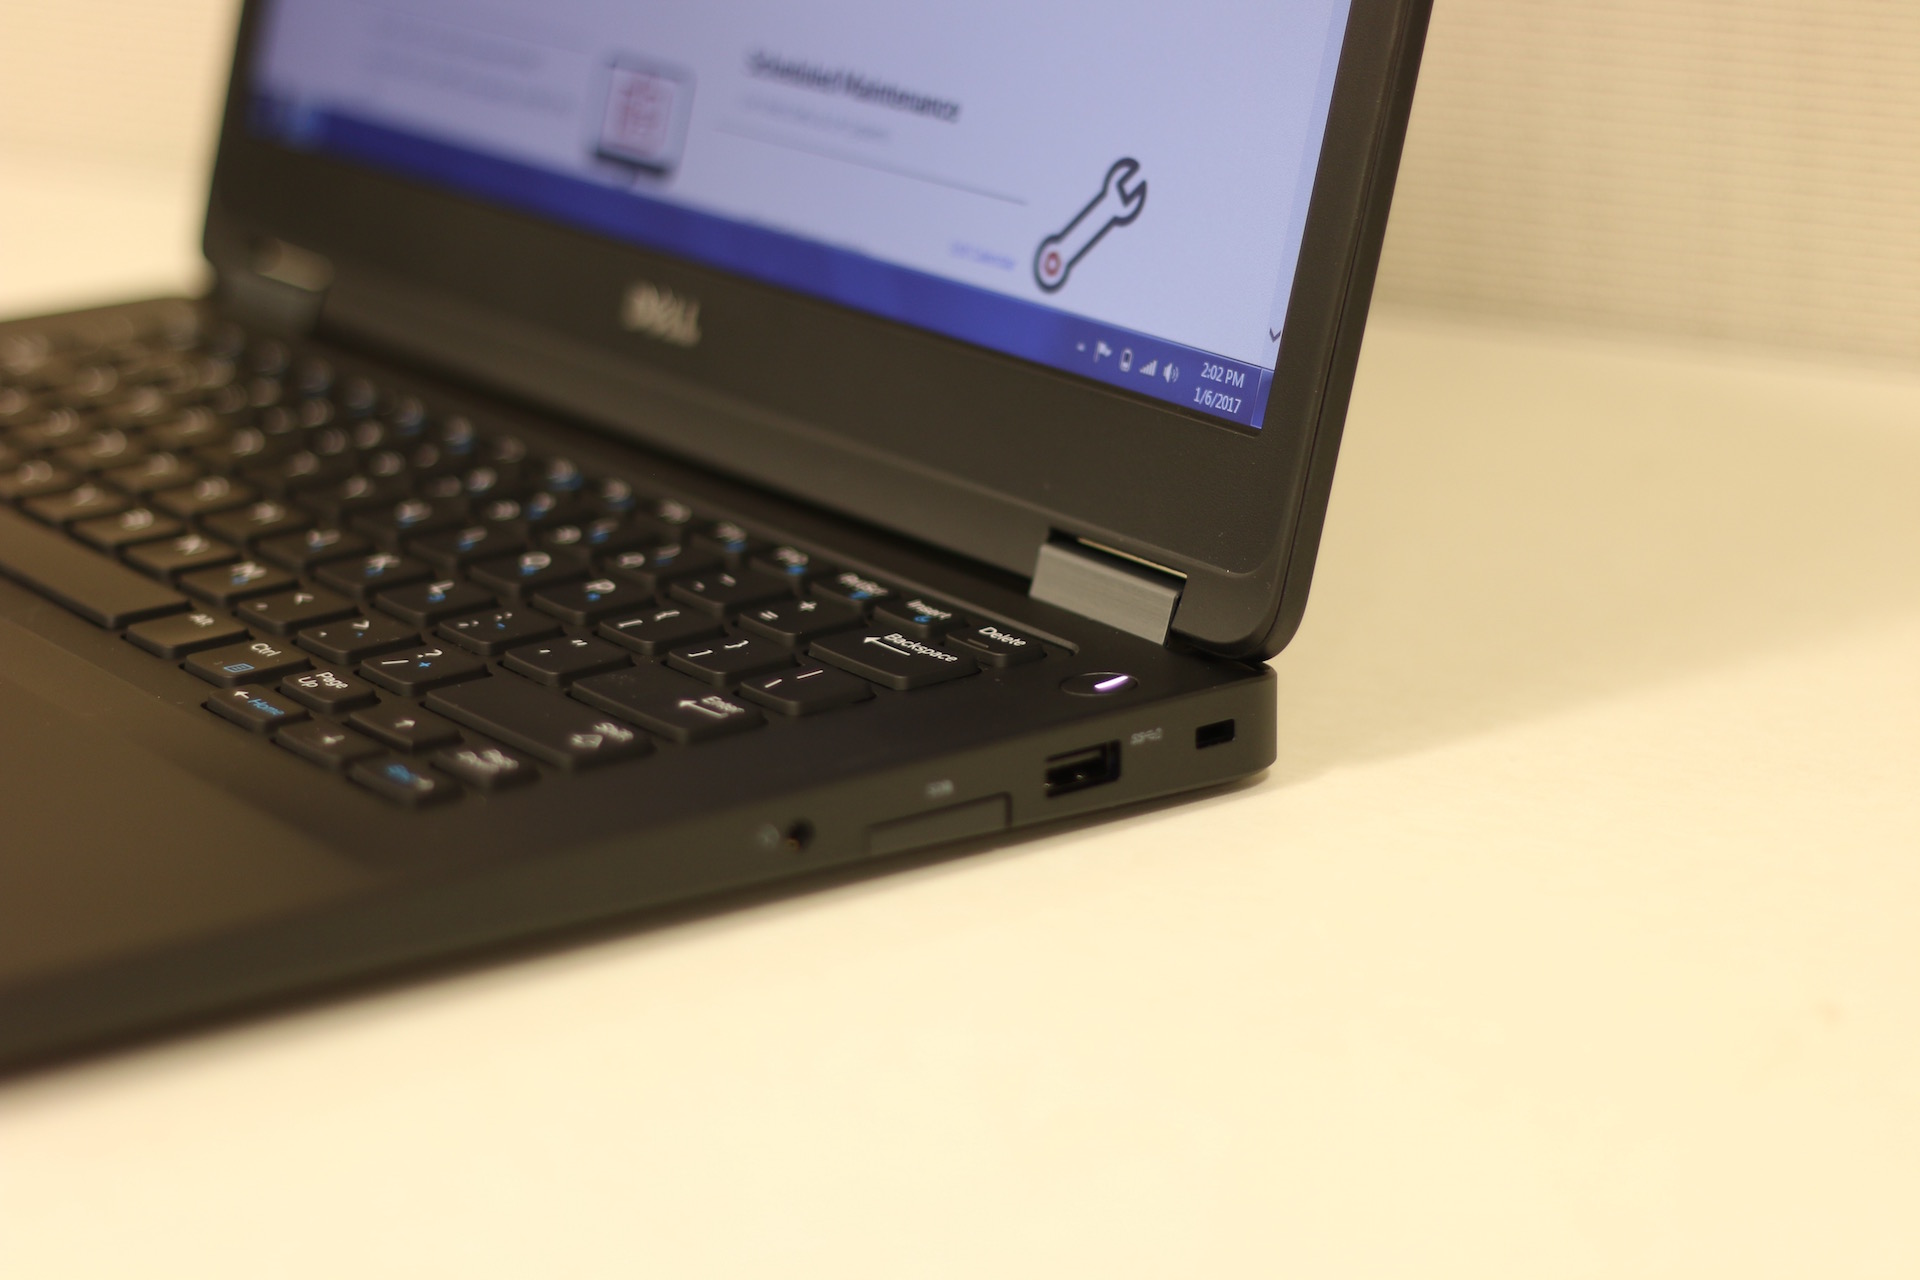 An Open Laptop With A Web Page Up.